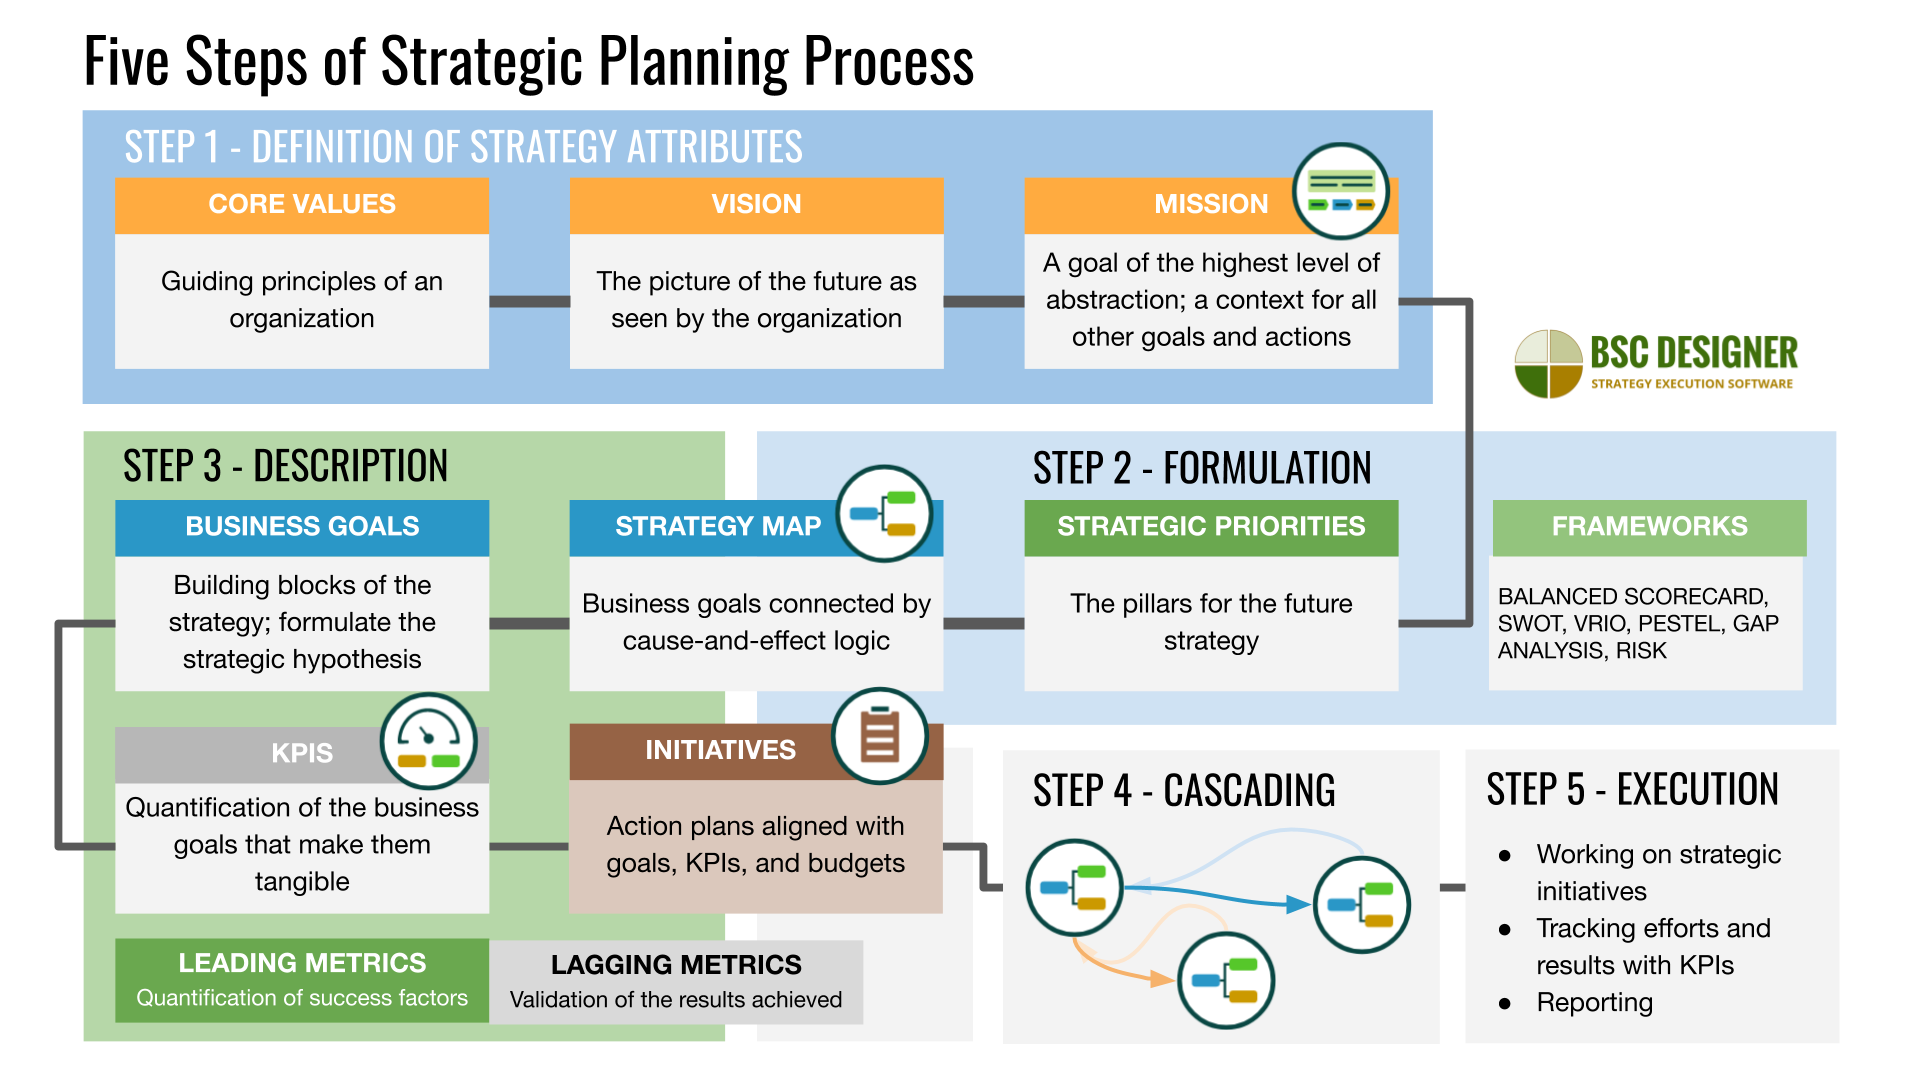 5 steps of strategic planning process from defining values, vision, and mission to describing strategy on strategy maps with business goals, KPIs, and initiatives.